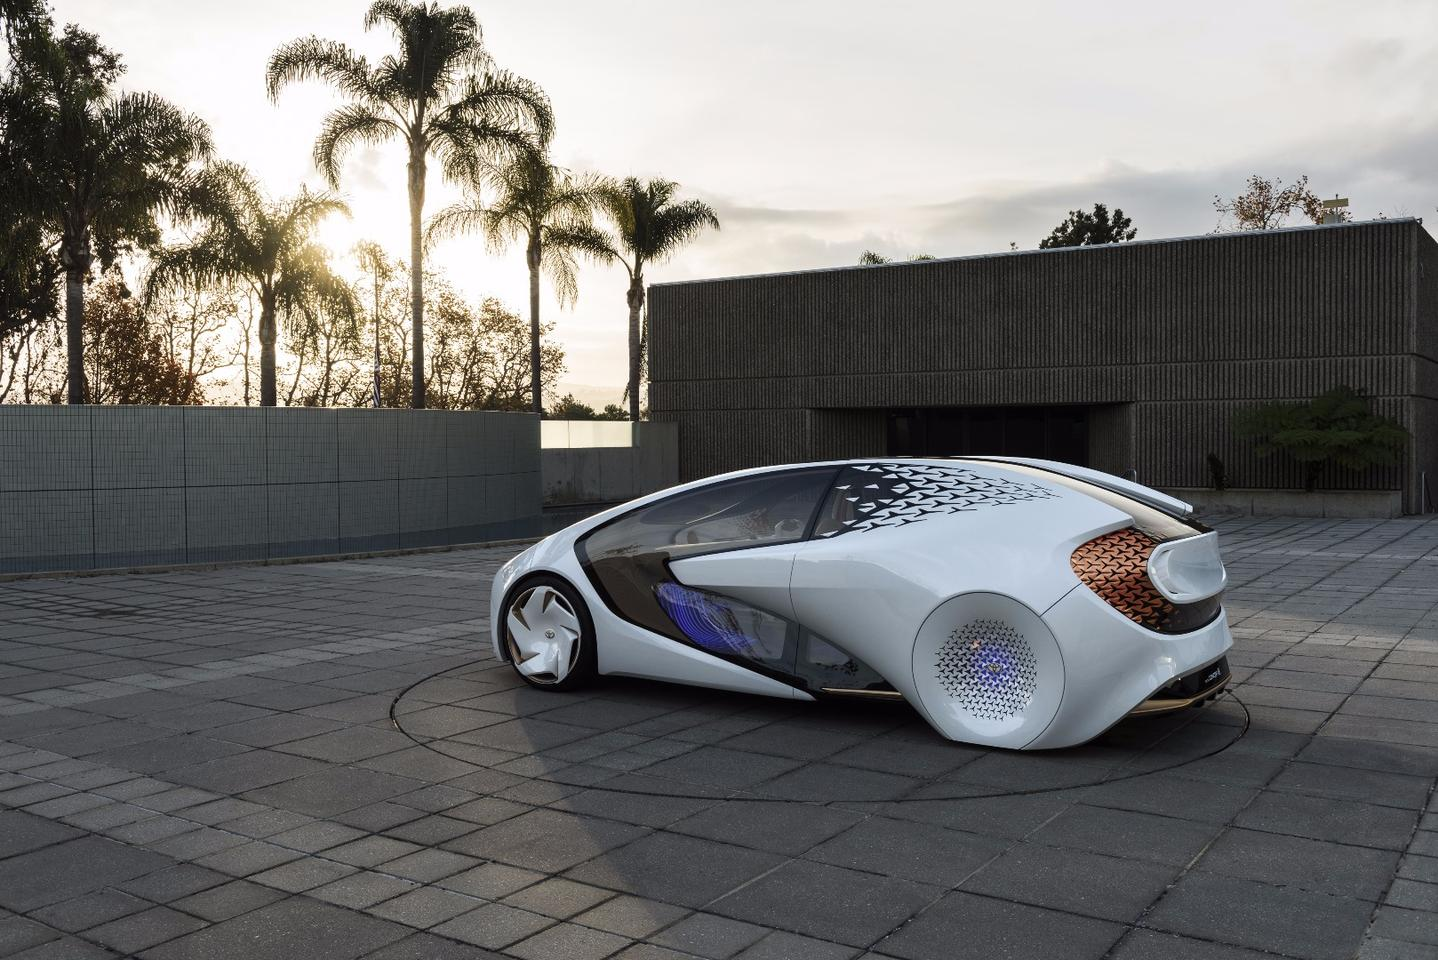 The Toyota Concept-i employs a highly conceptual, futuristic look with lots of glass and faired rear wheels